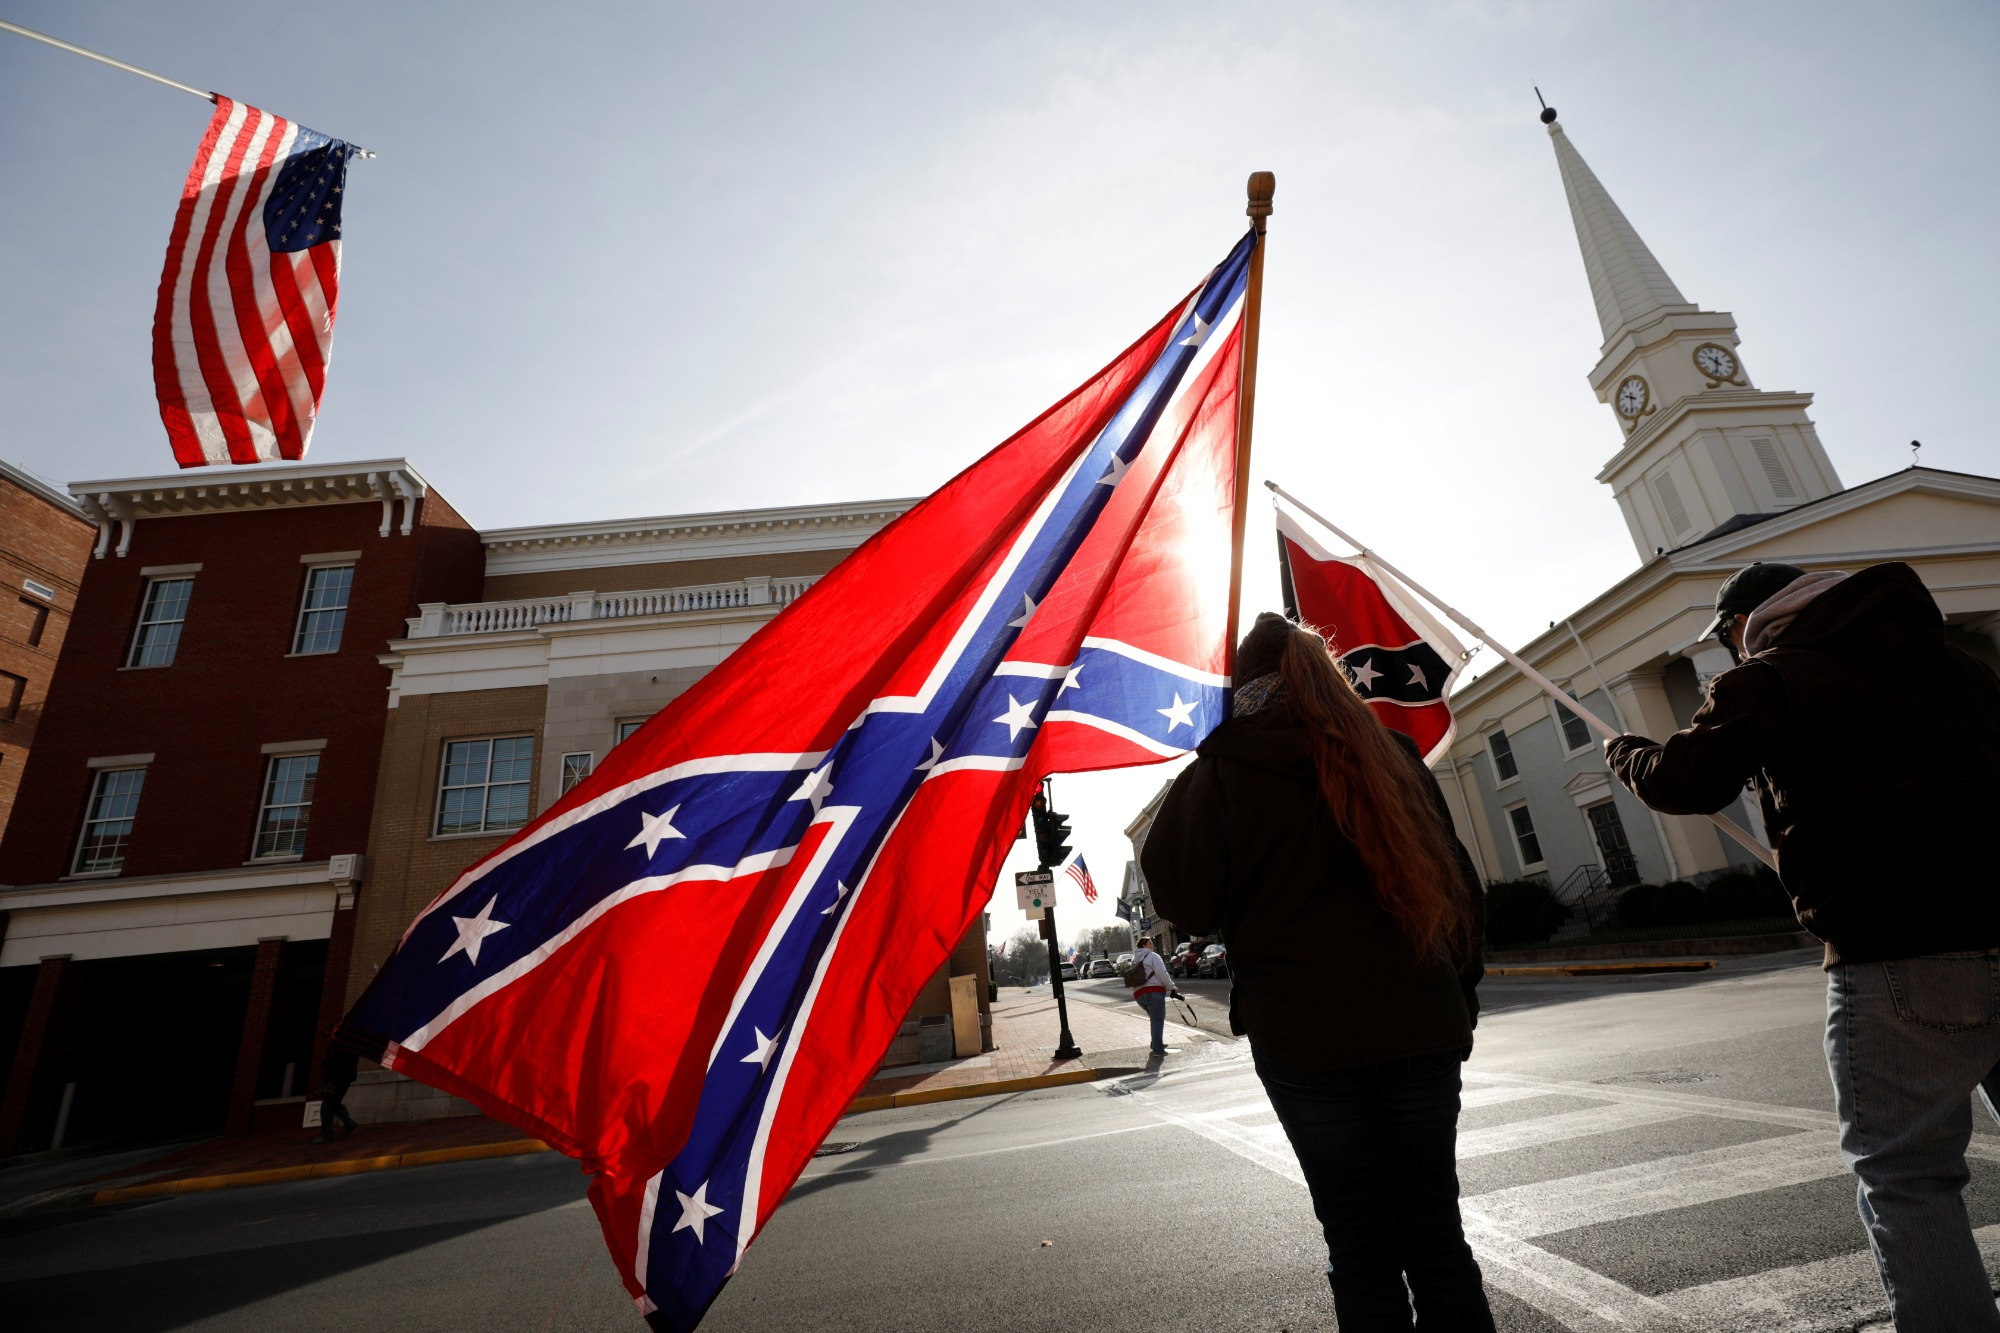 The Confederate Flag Is Pure Racism (Not Southern Heritage)